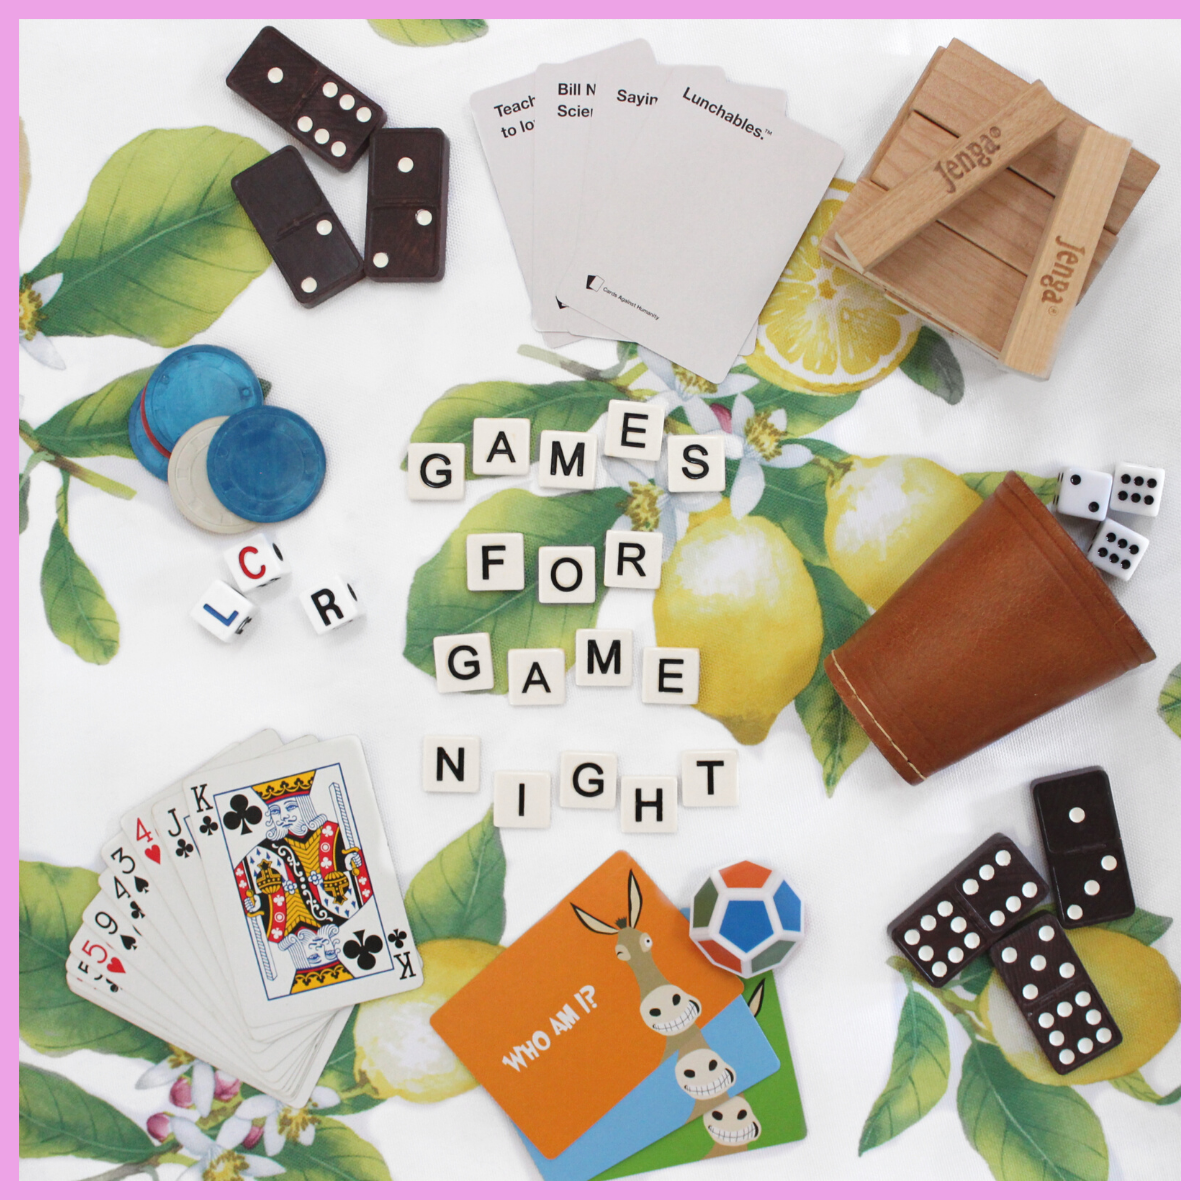 Never Stop Playing! | 5 Favorite Games for Game Night